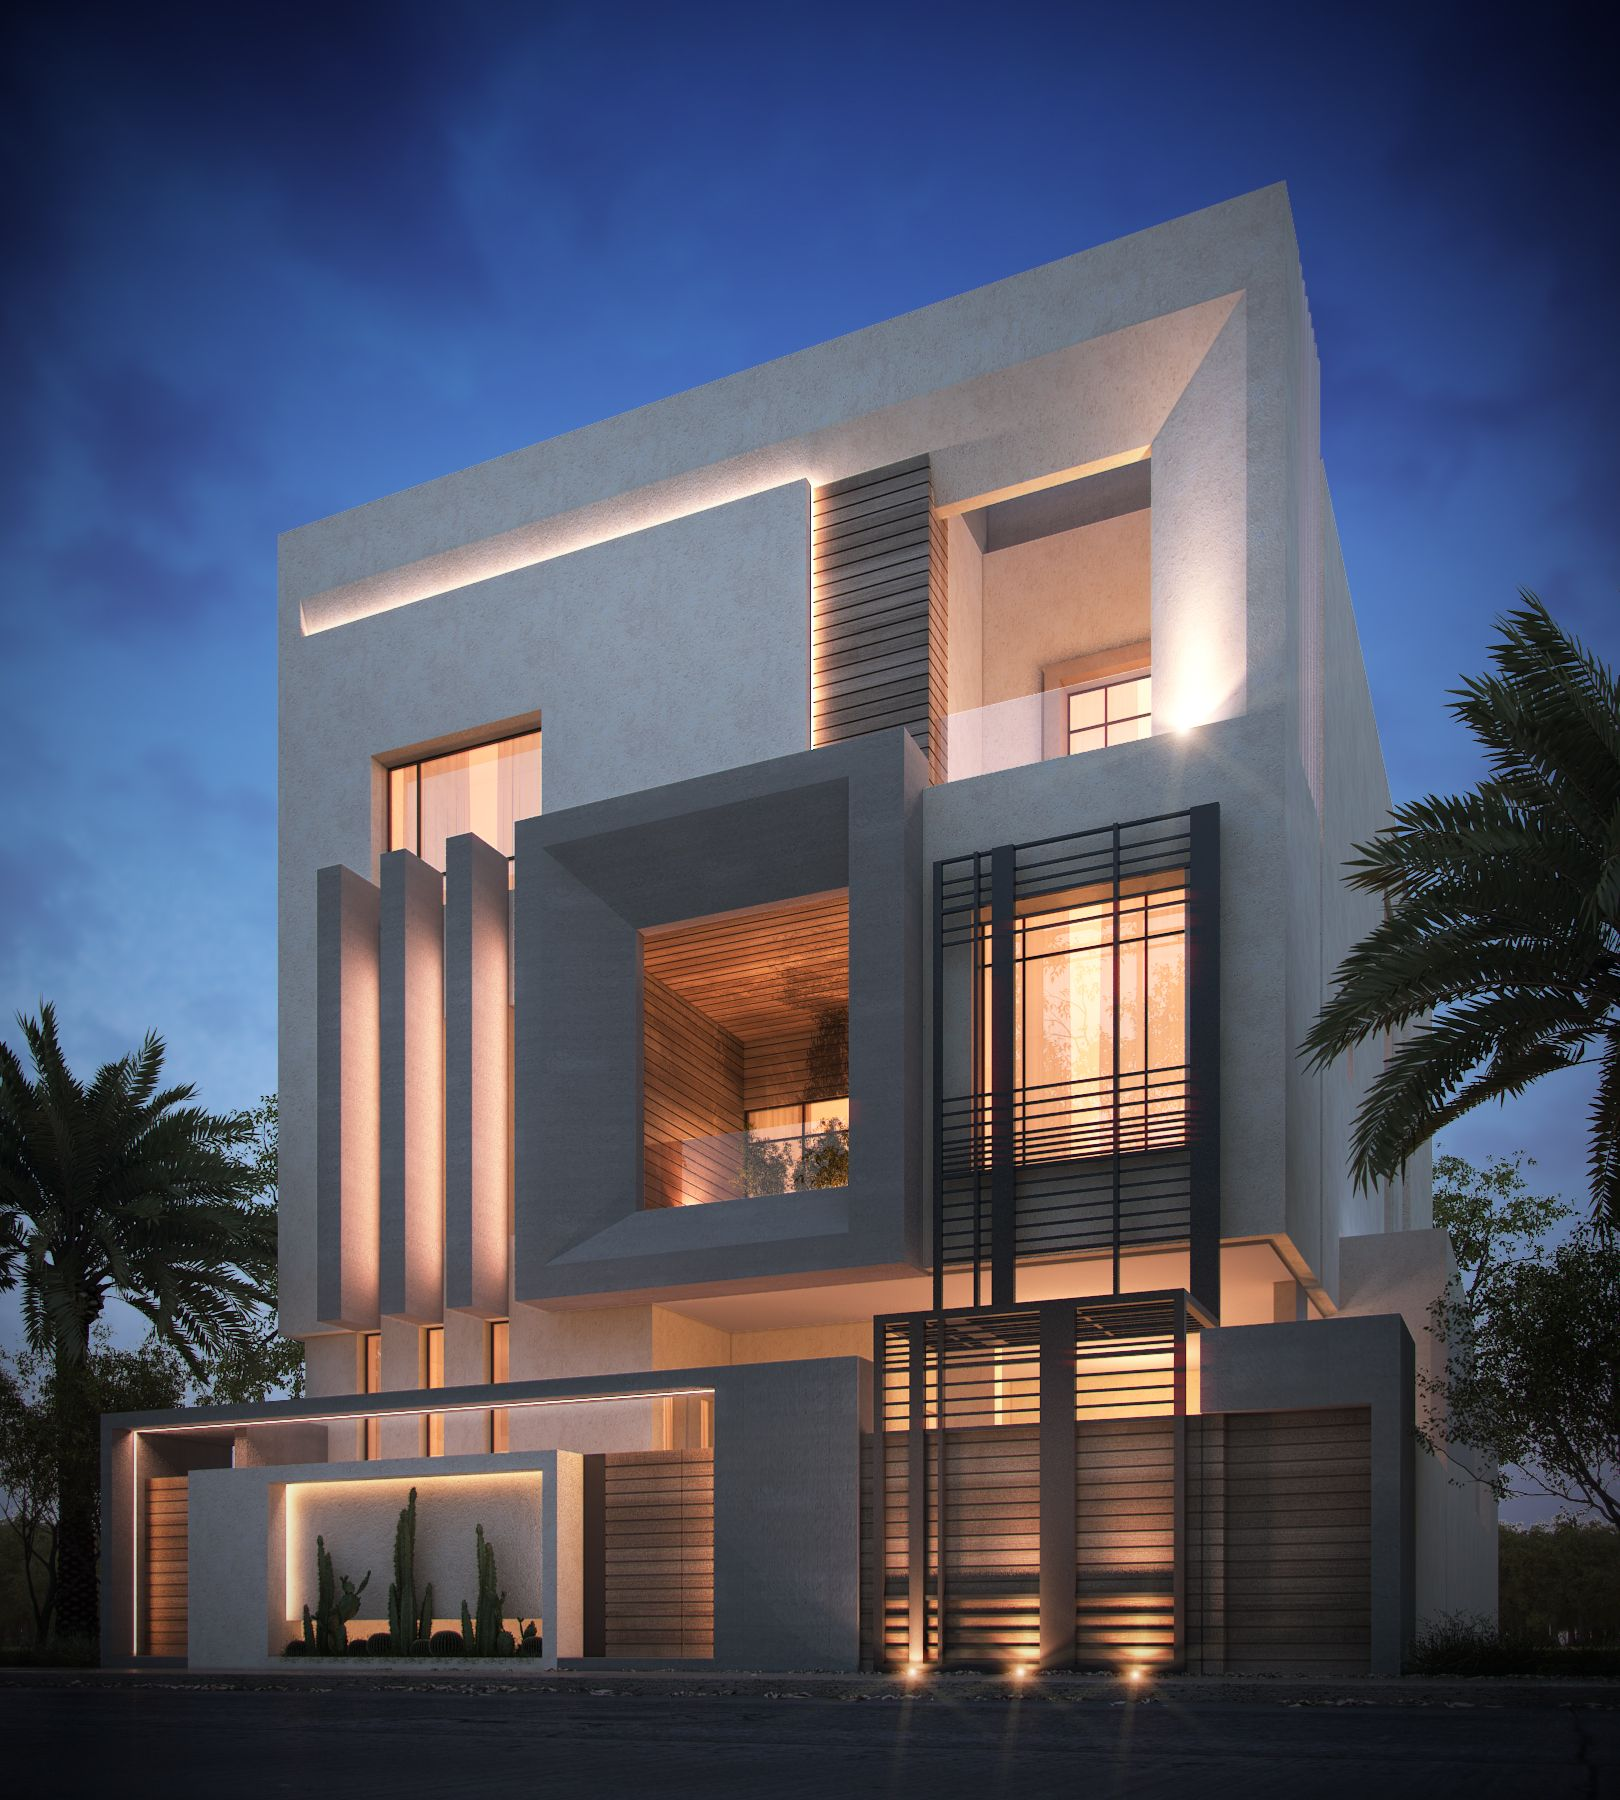 400 M Private Villa Kuwait Sarah Sadeq Architects Sarah Sadeq Architectes Pinterest Modern